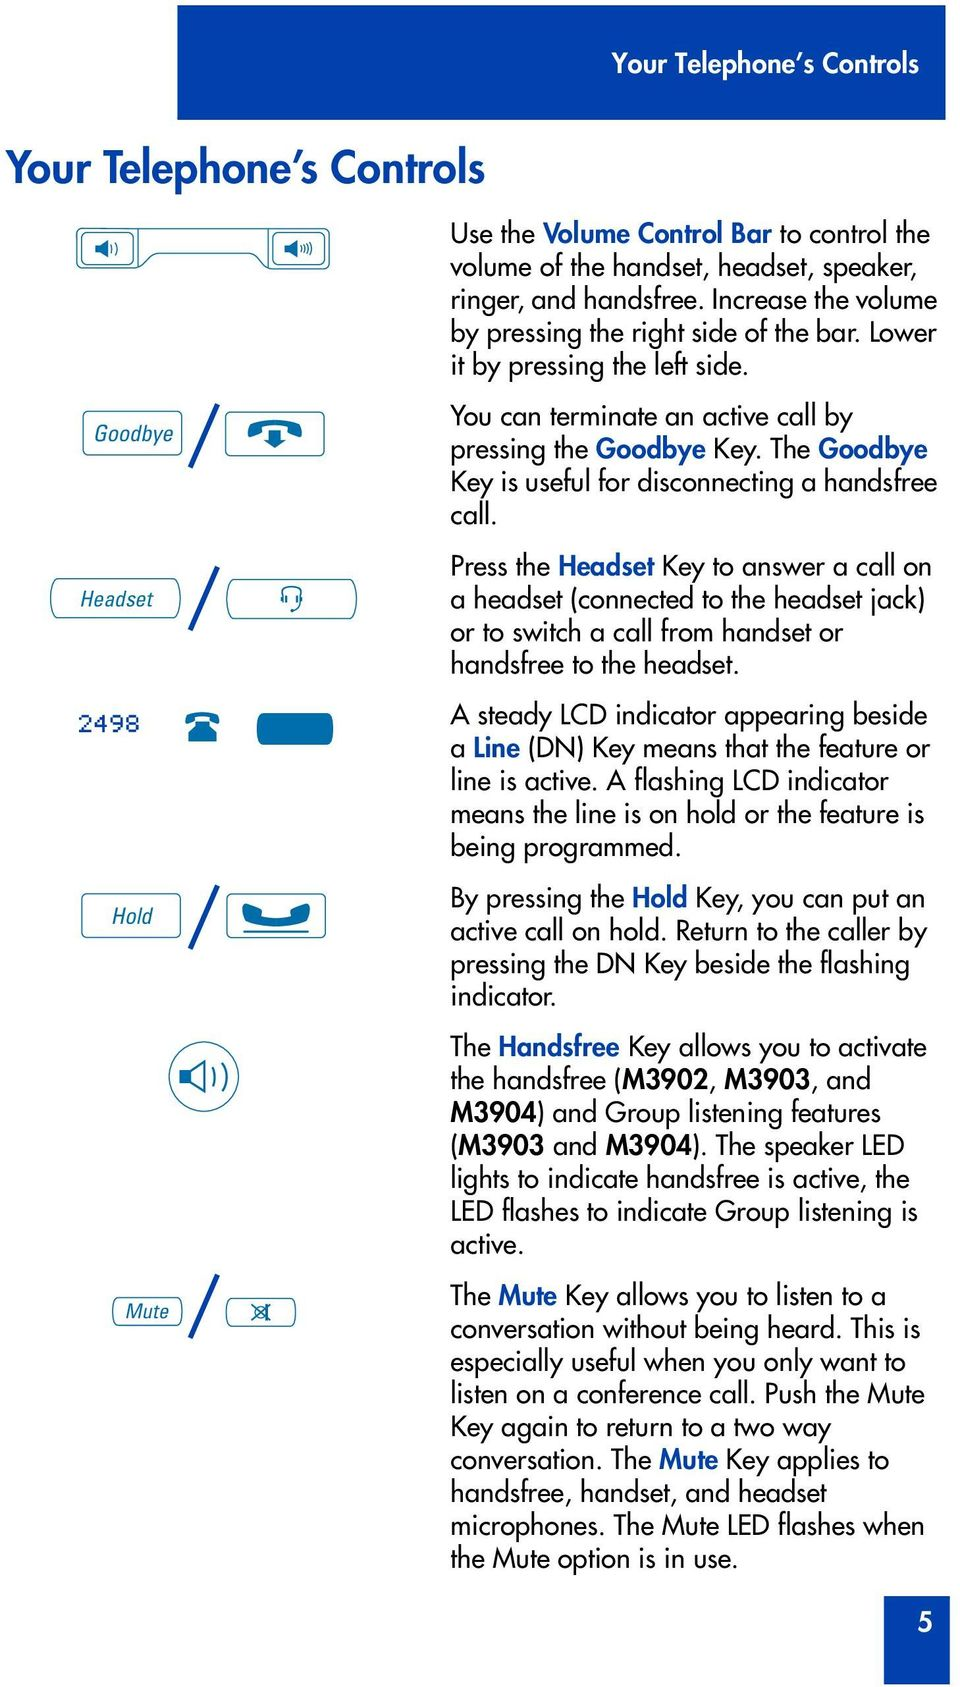 The Goodbye Key is useful f disconnecting a handsfree call. Press the Headset Key to answer a call on a headset (connected to the headset jack) to switch a call from handset handsfree to the headset.